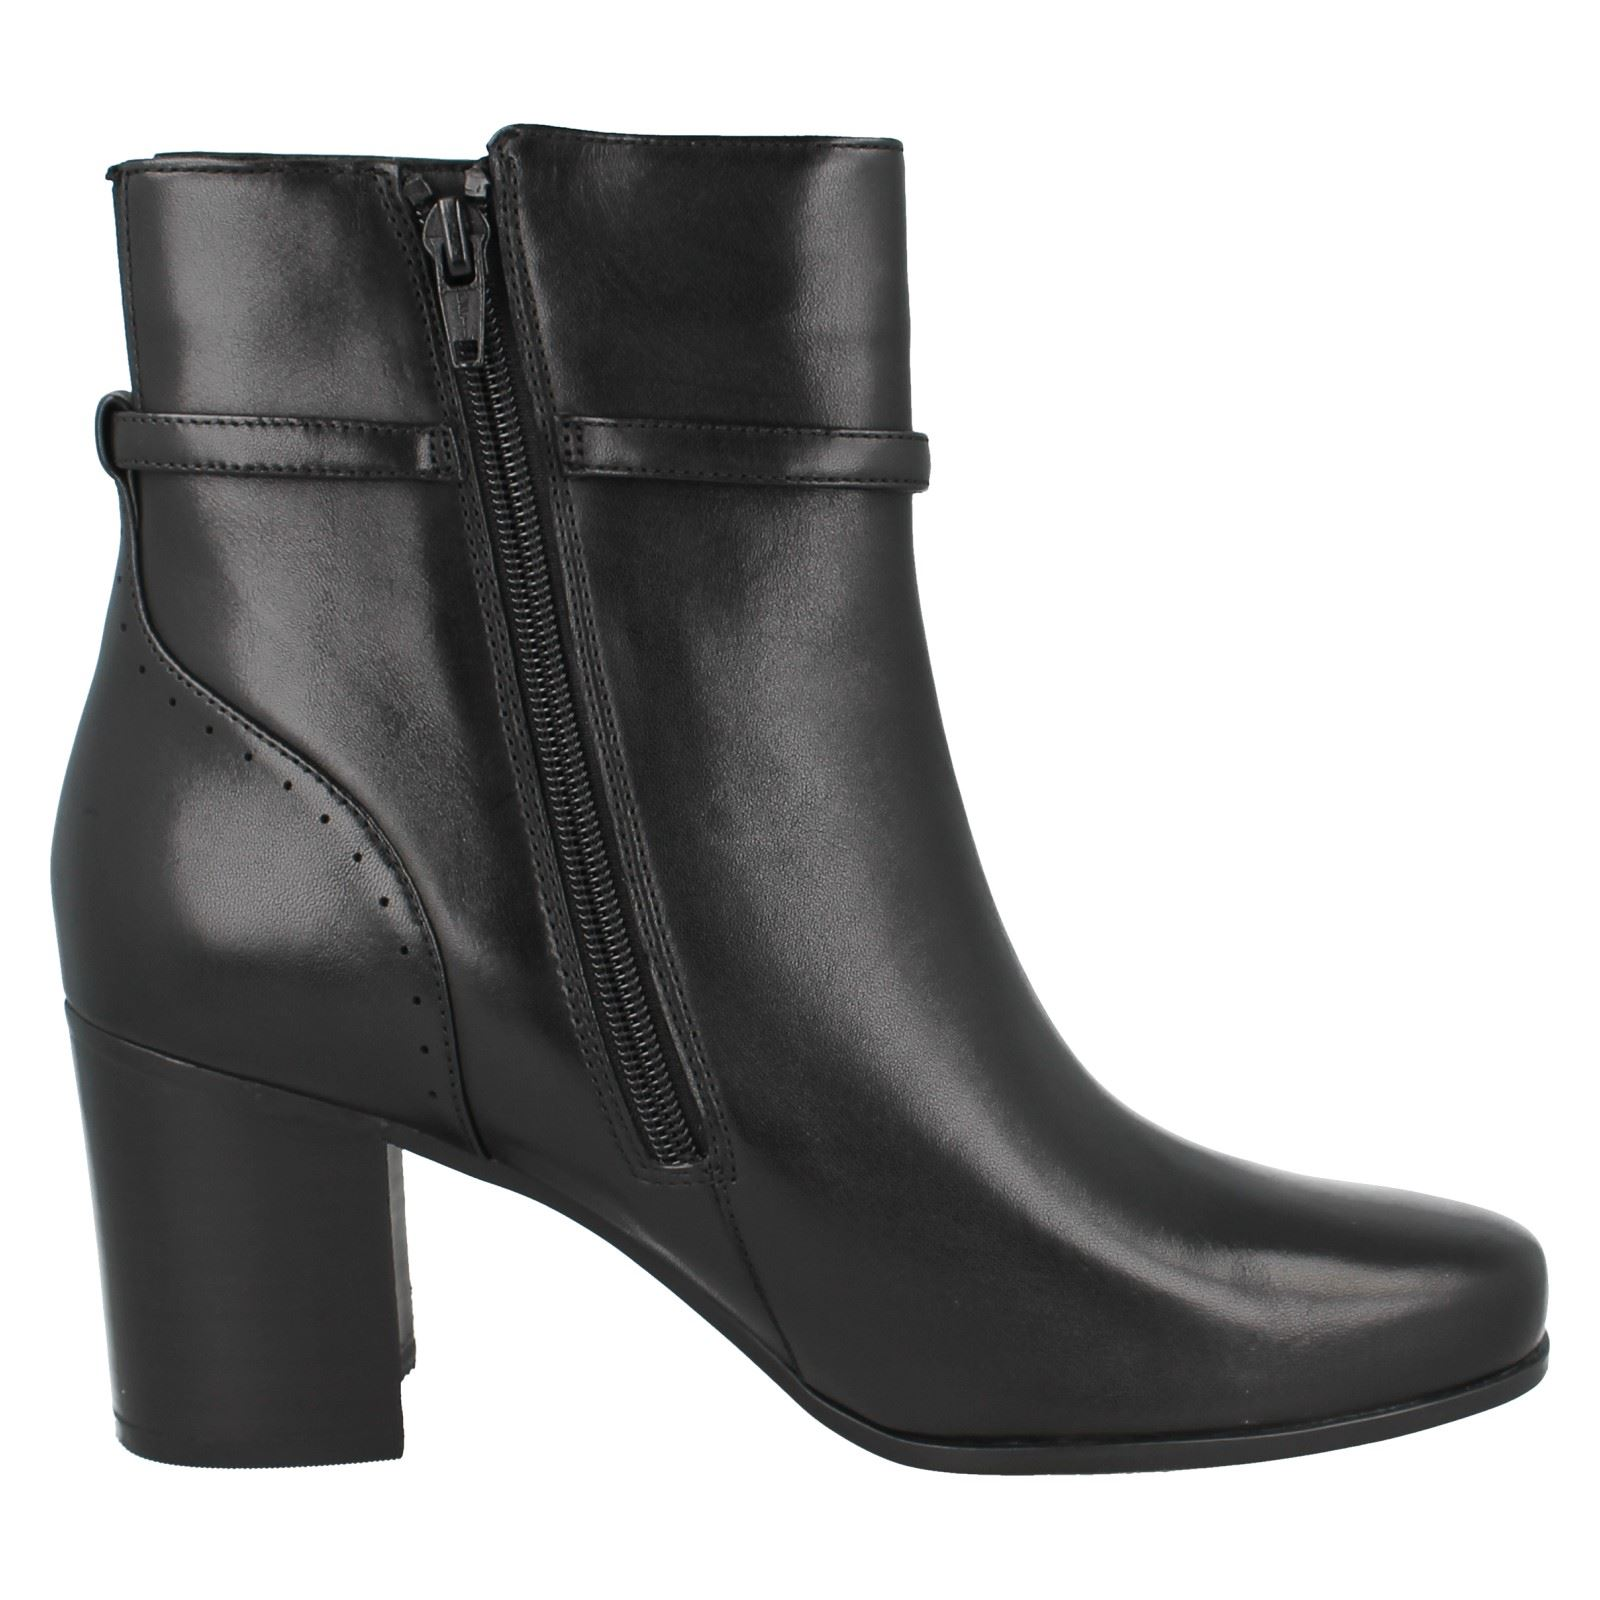 Style Kensett Formal Leather Ankle Diana Boots Clarks Black Ladies TIxqwXT